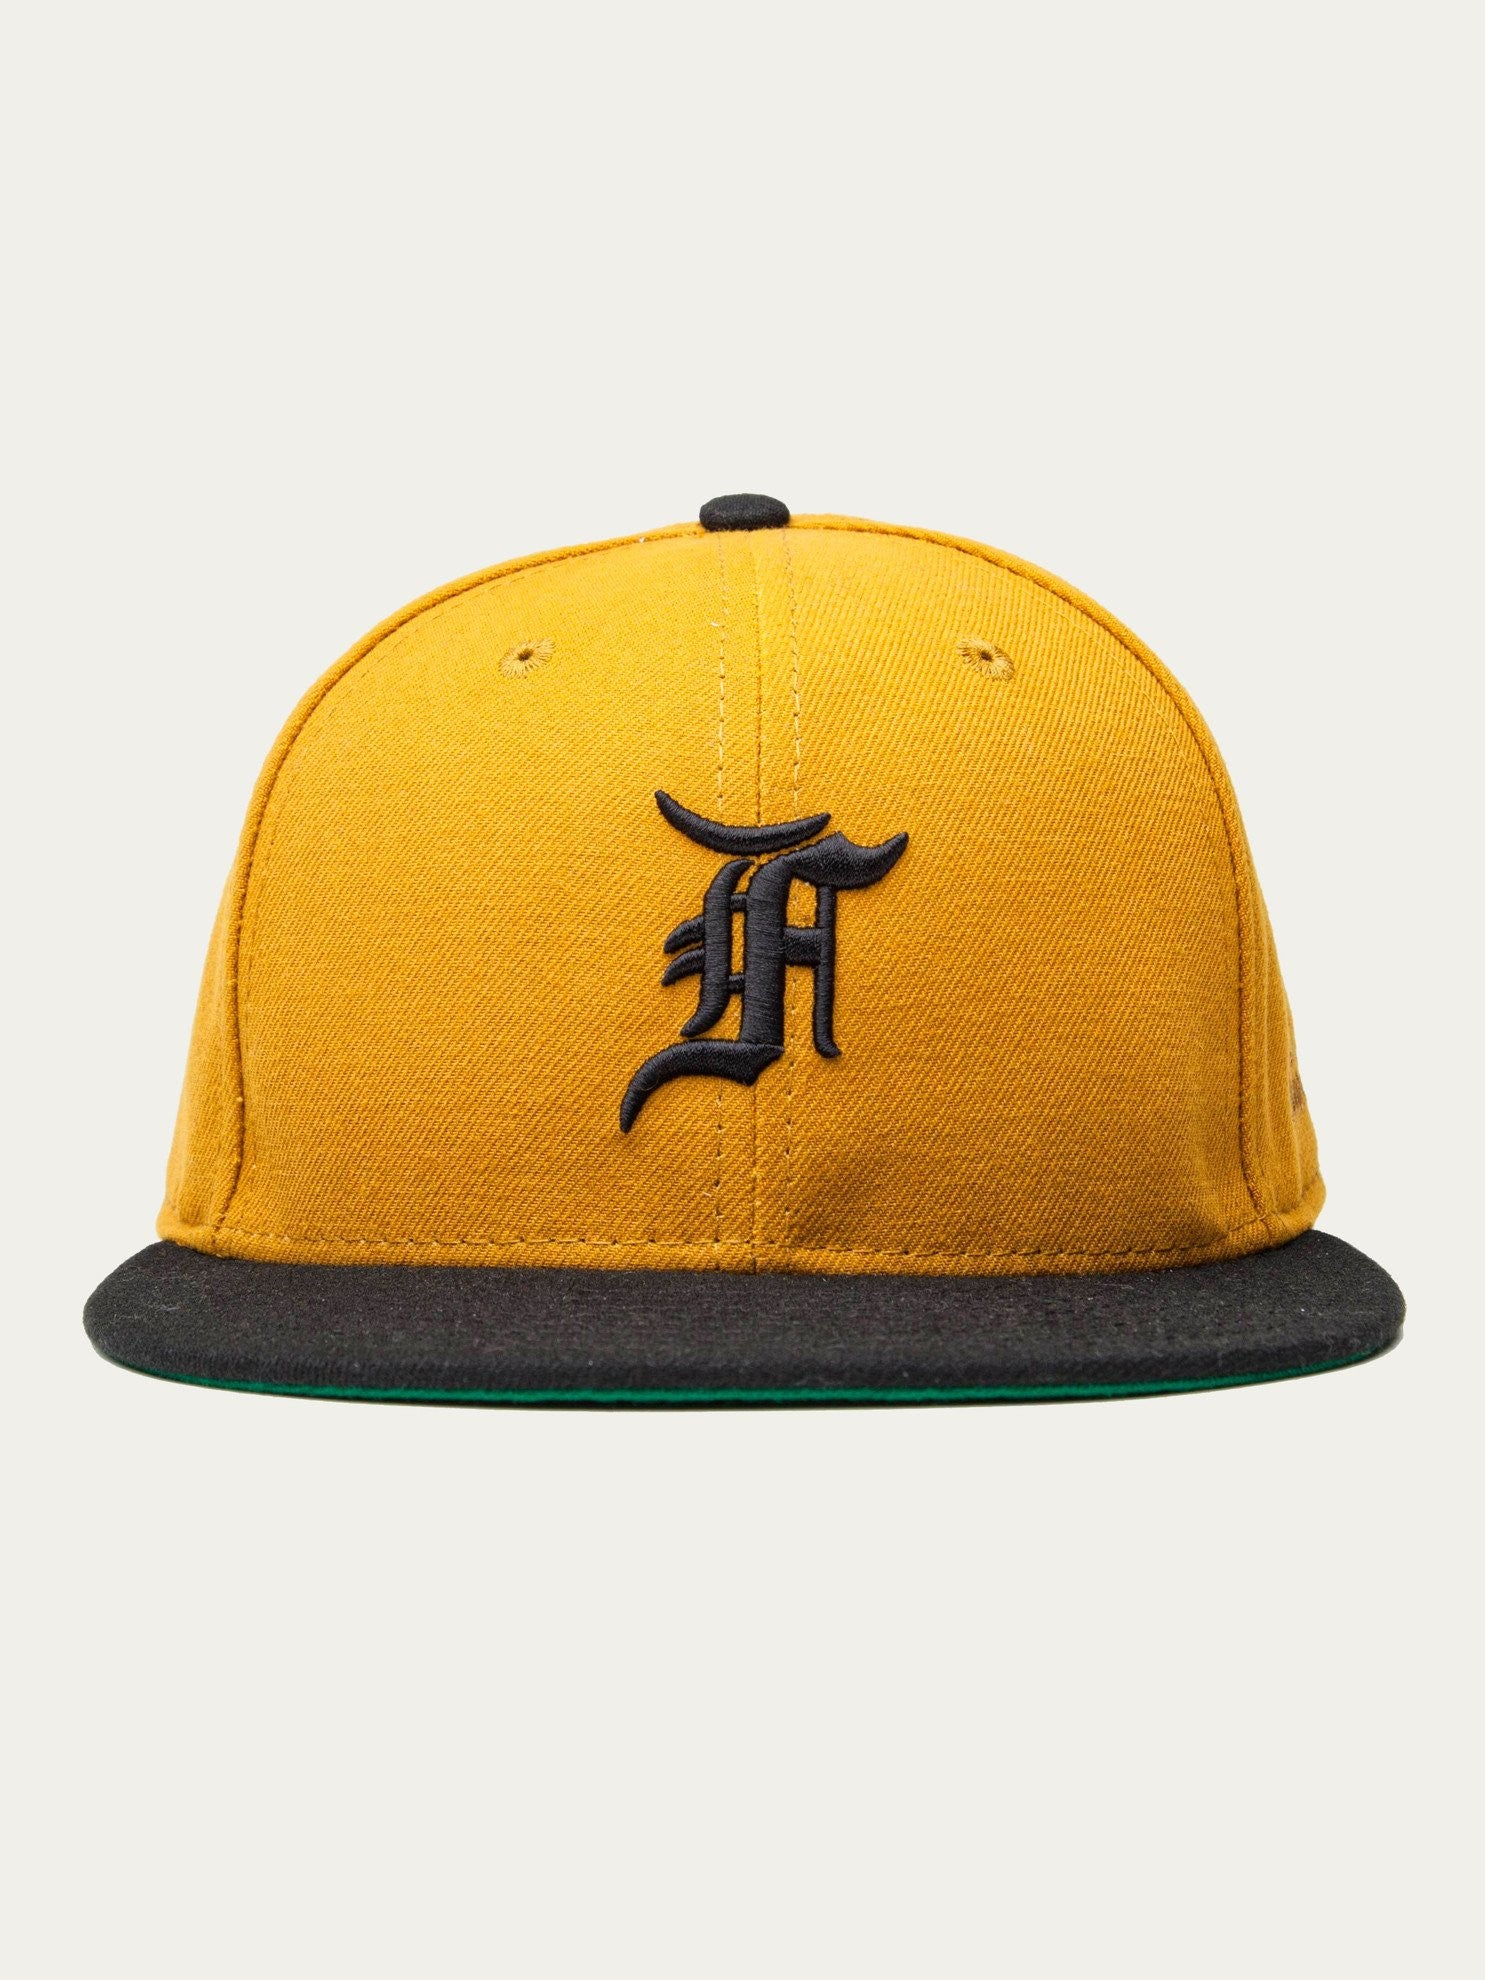 Gold New Era Fitted Cap (59FIFTY) 1